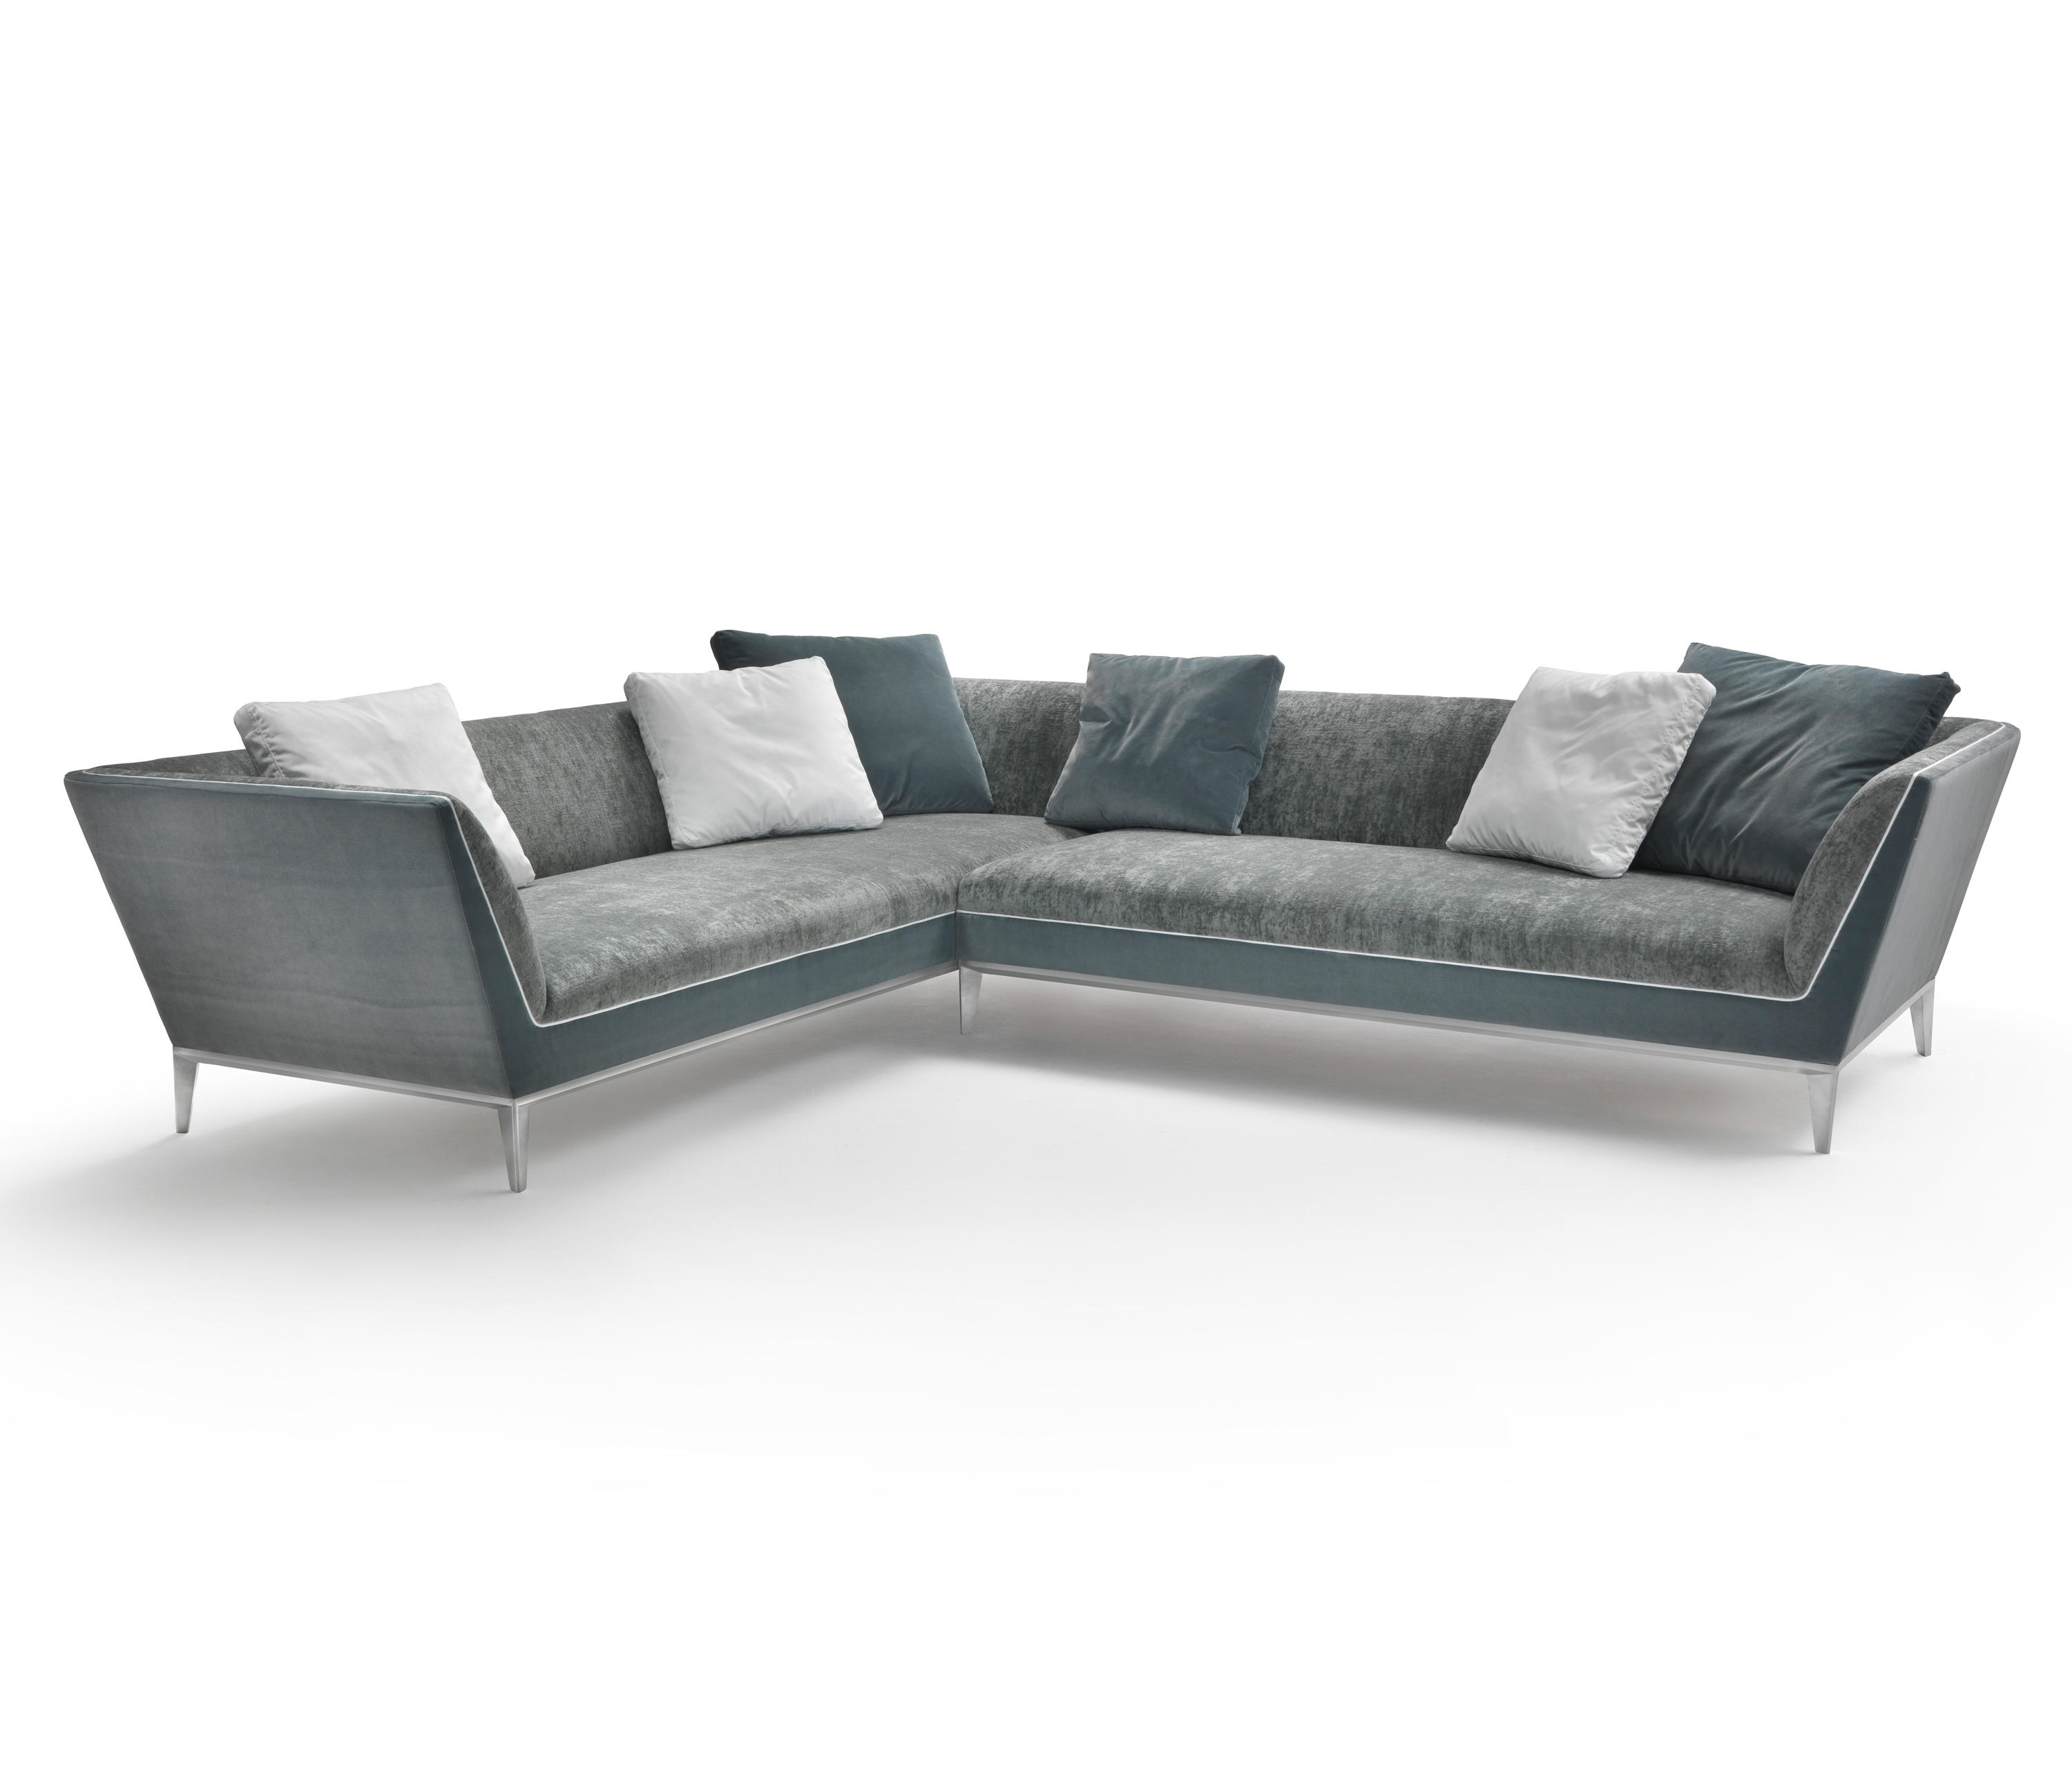 2017 Living Room : Modular Sofas For Small Spaces Small Couch For With Regard To Small Modular Sofas (View 6 of 15)